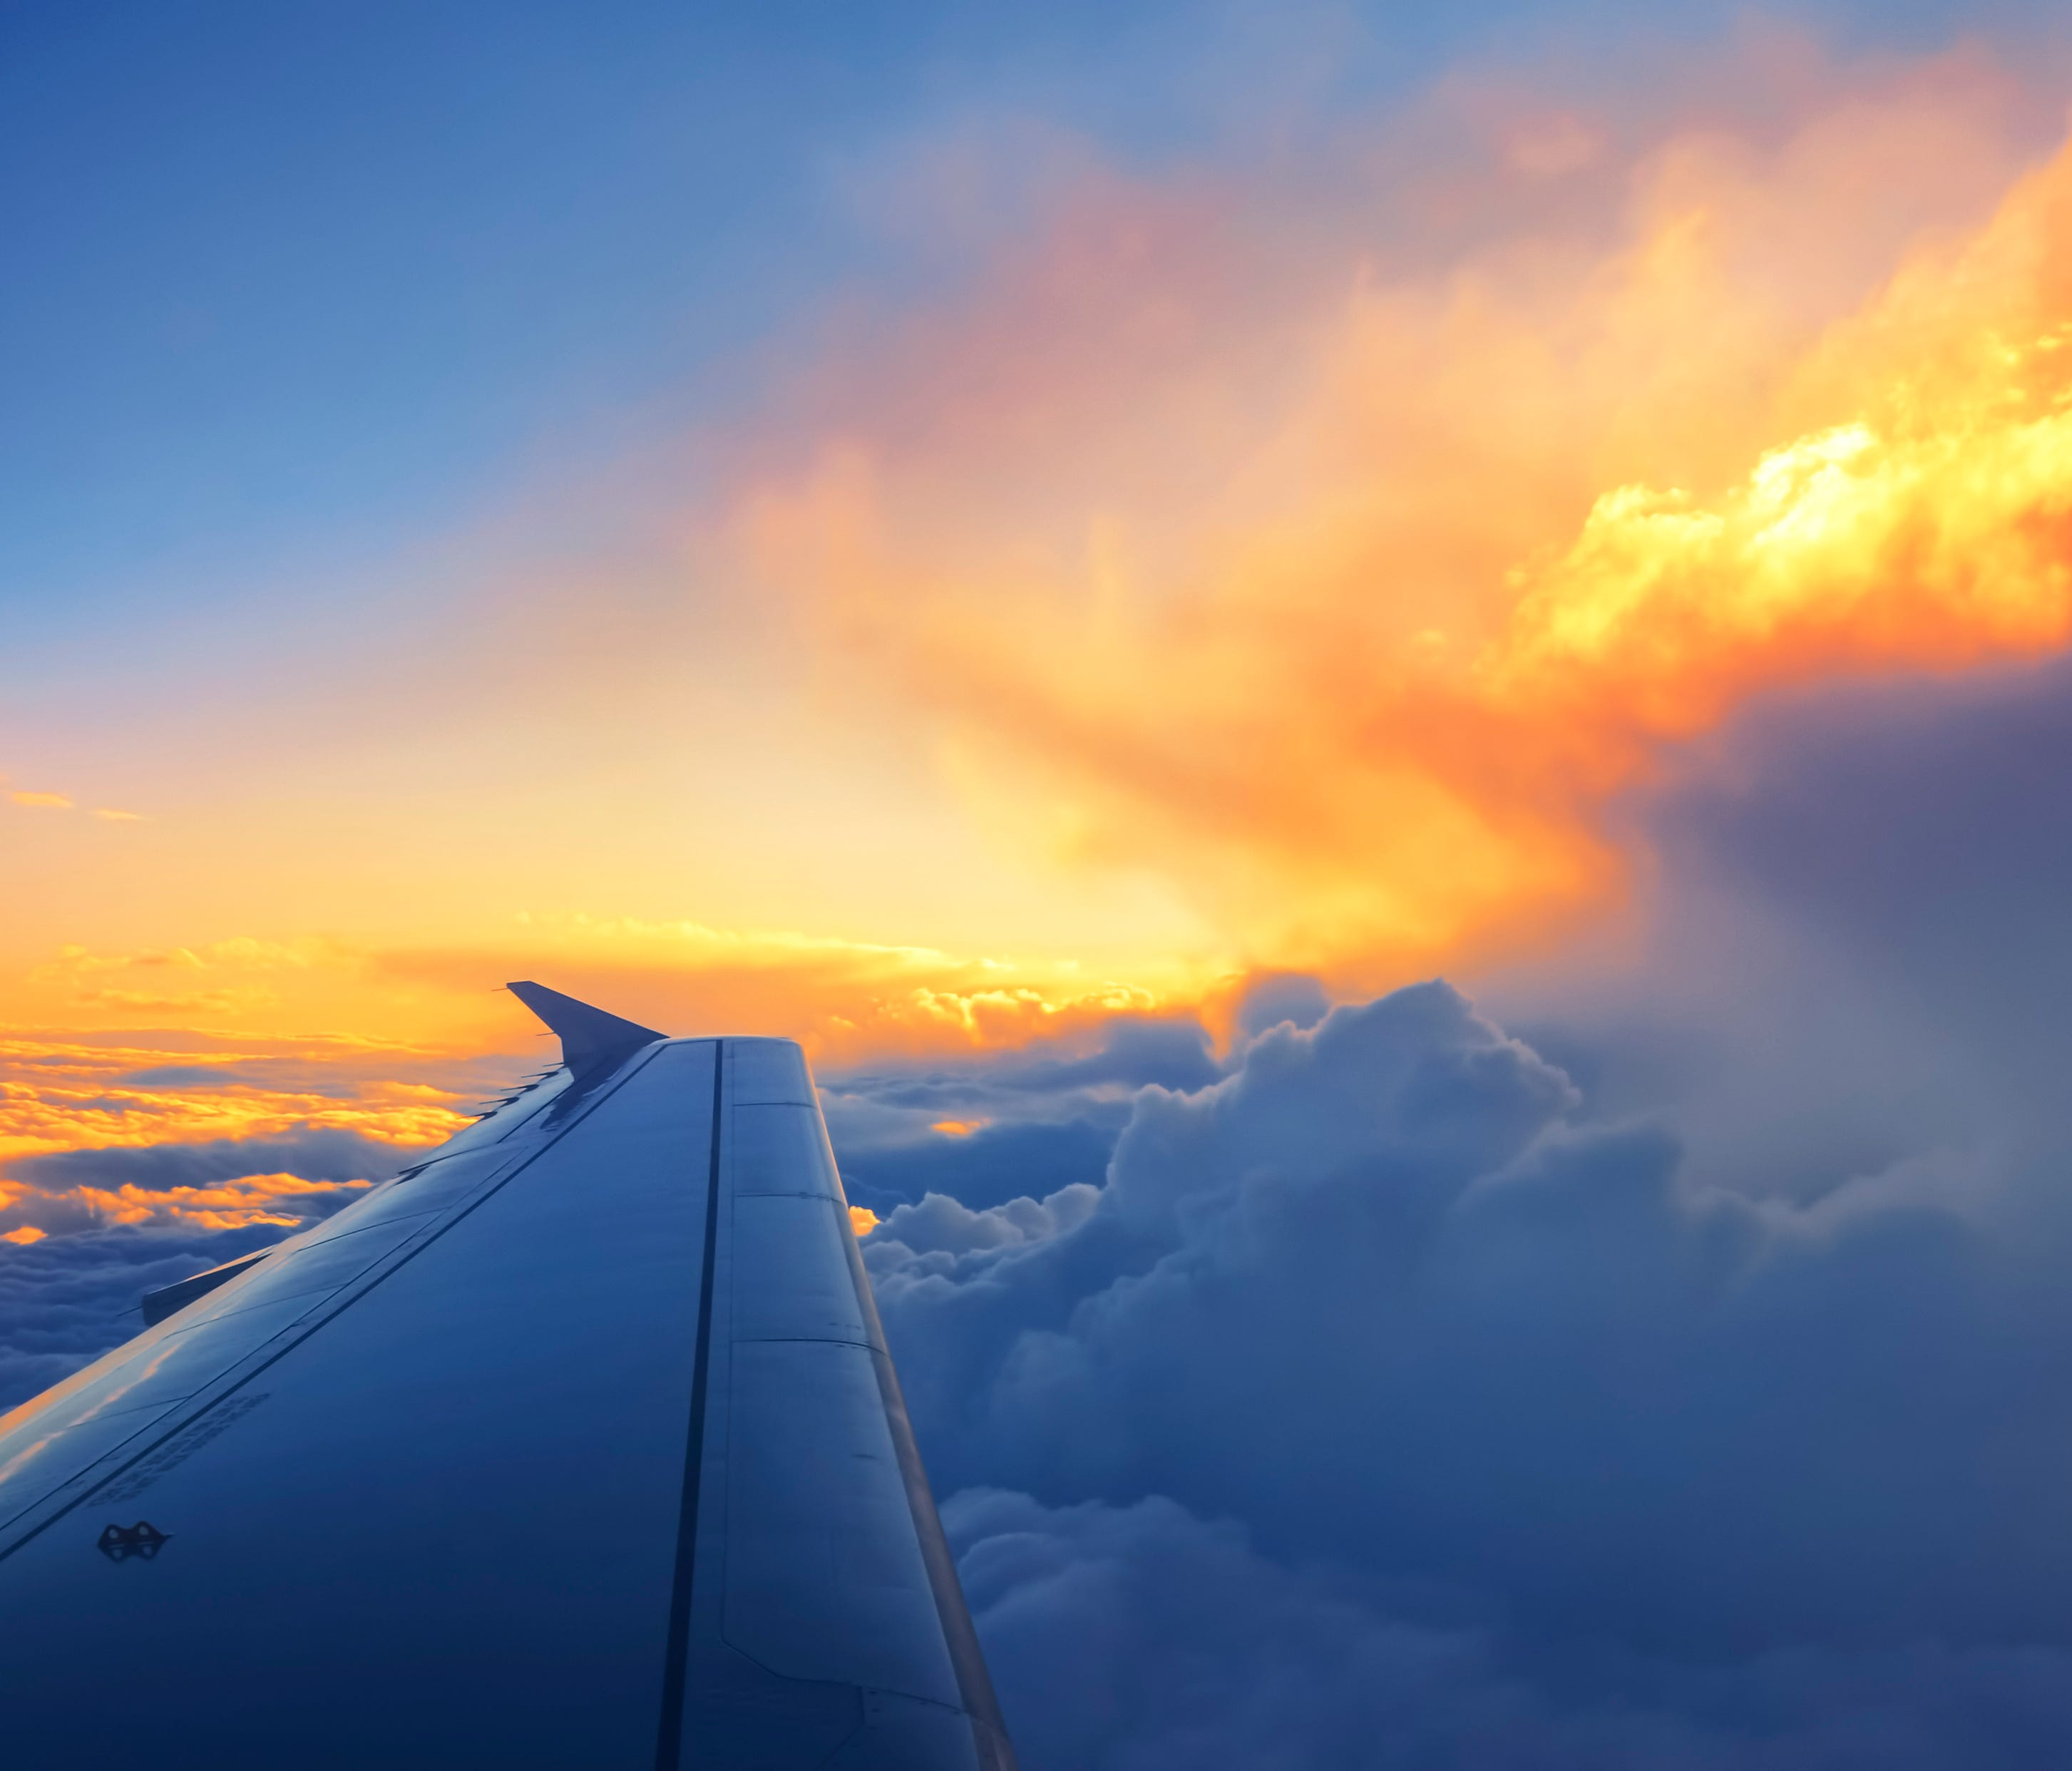 Airplanes are designed to withstand much more turbulence than most people ever experience.